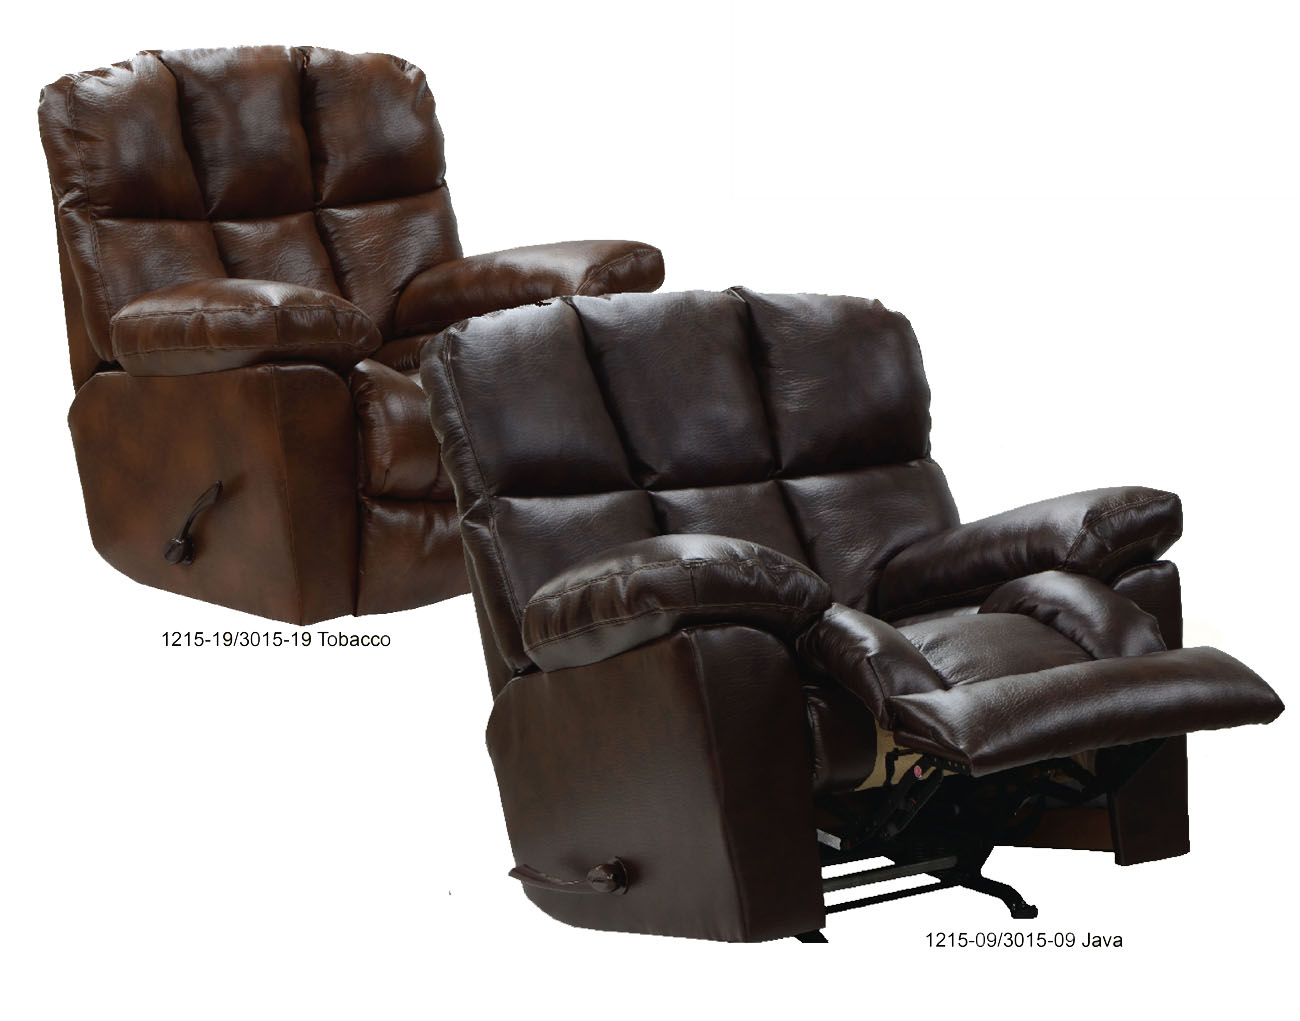 Catnapper Lift Chair Easy Comfort Chairs 2 Photo